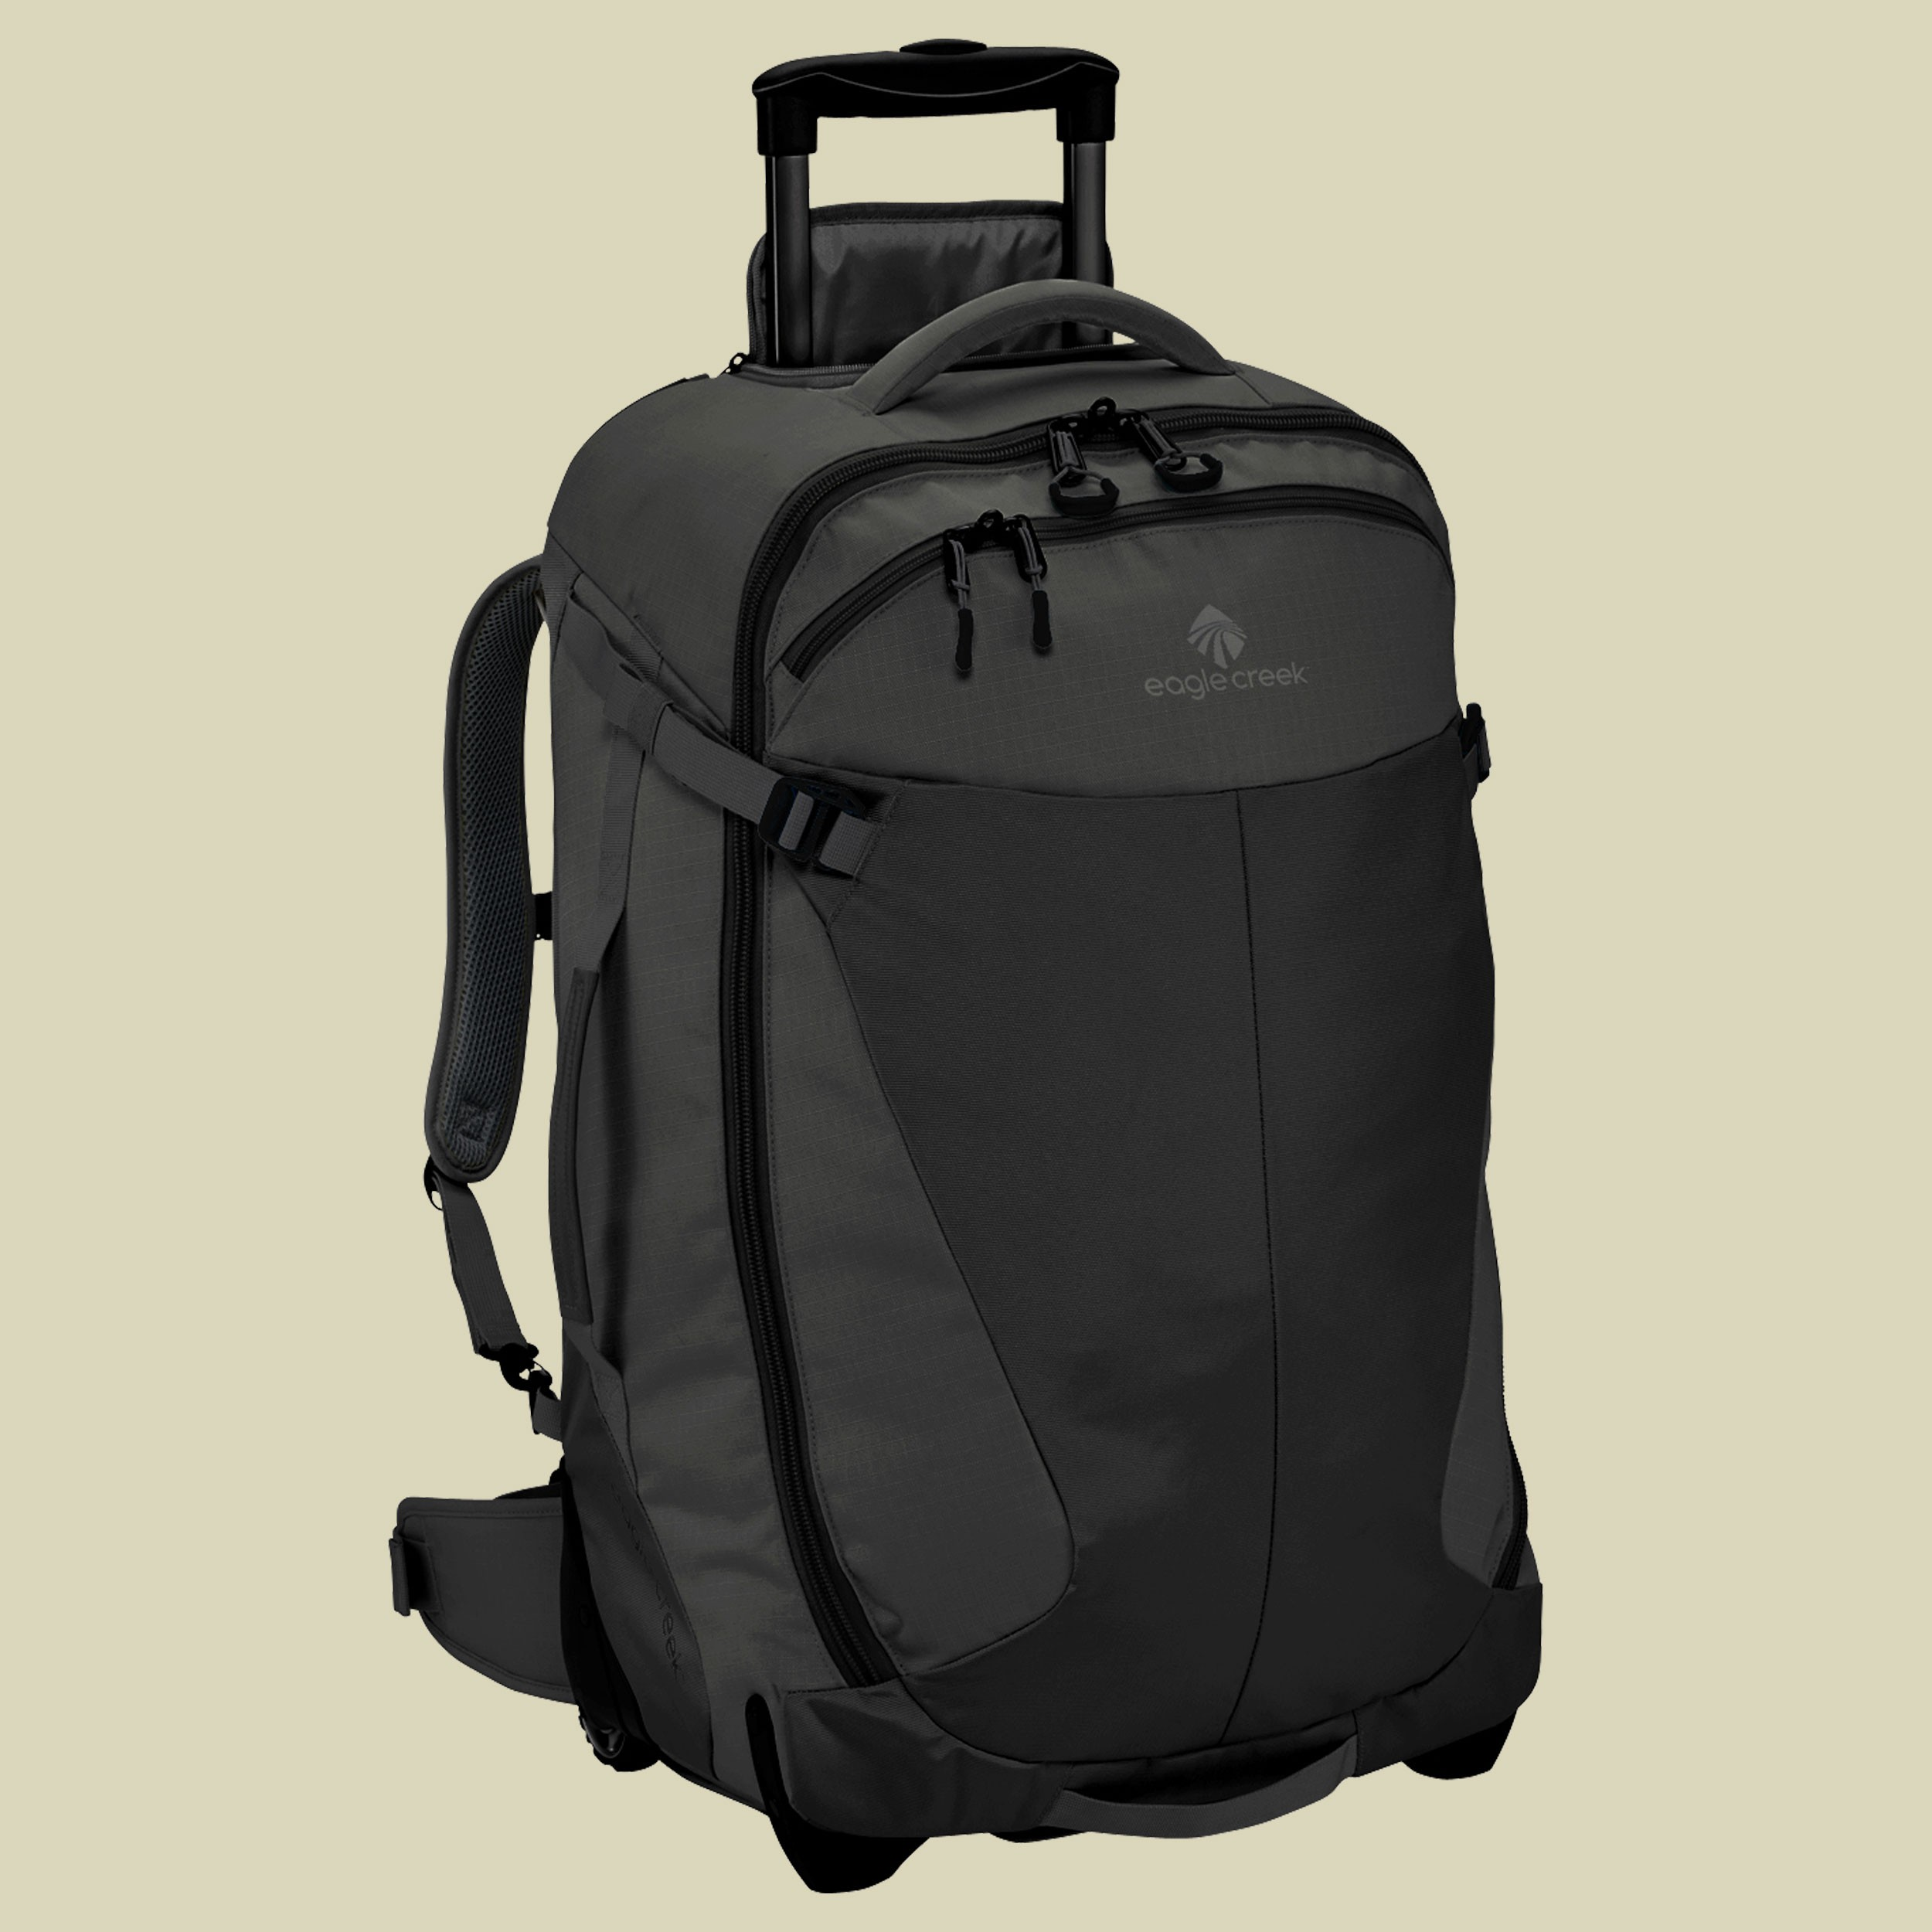 Activate Wheeled Backpack 26